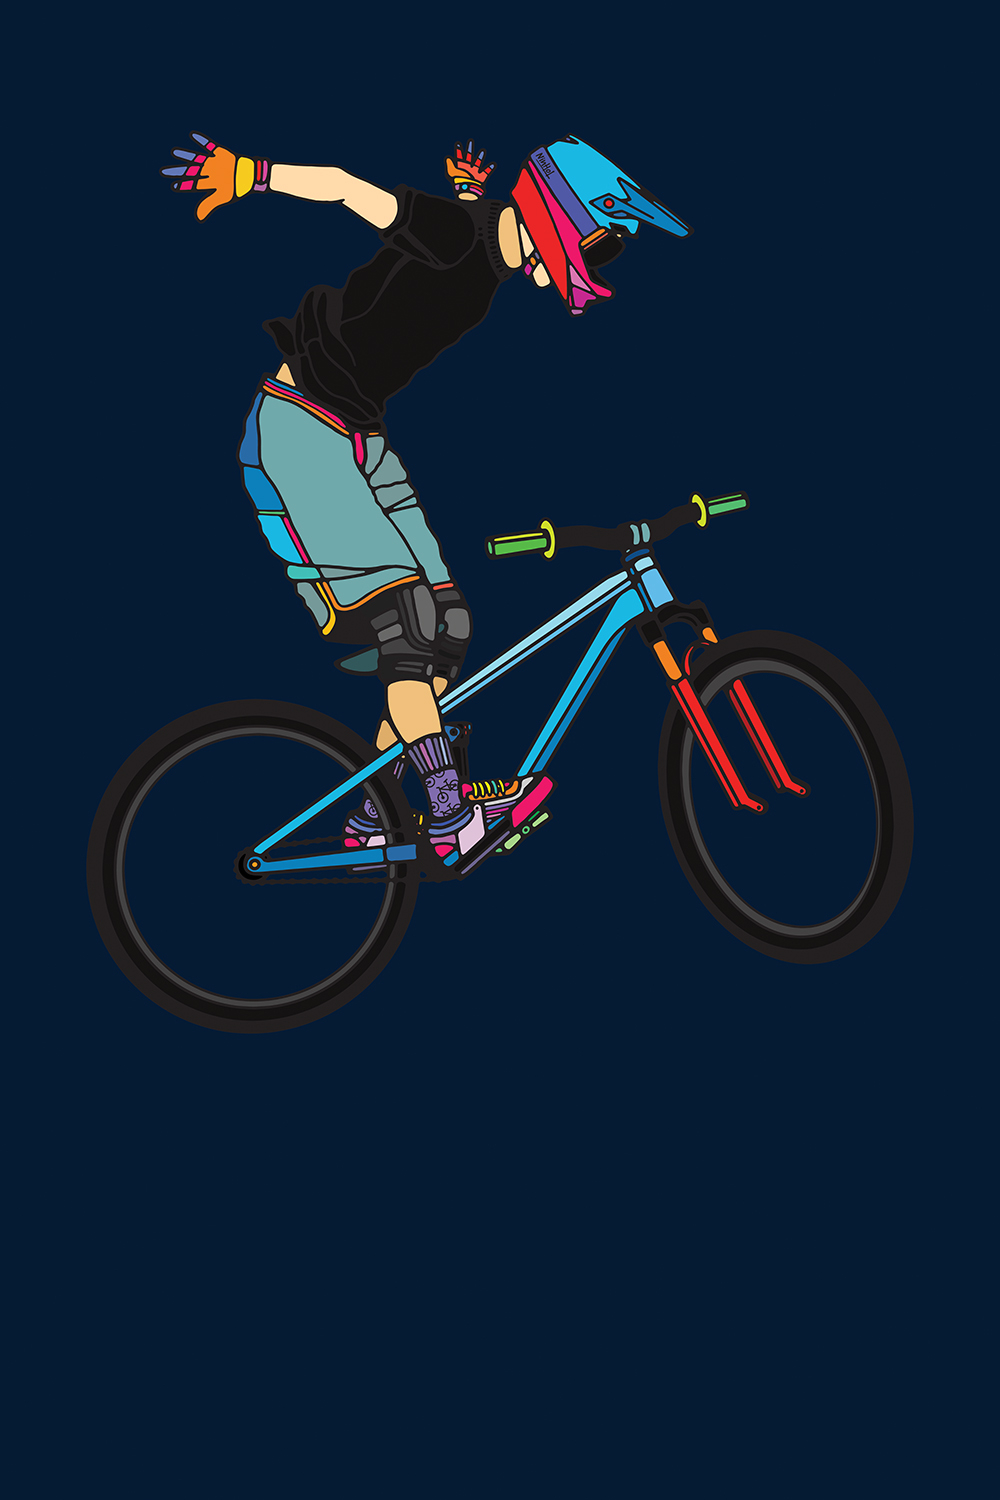 Graphic of a BMX rider doing a jump on a bike on a dark blue background